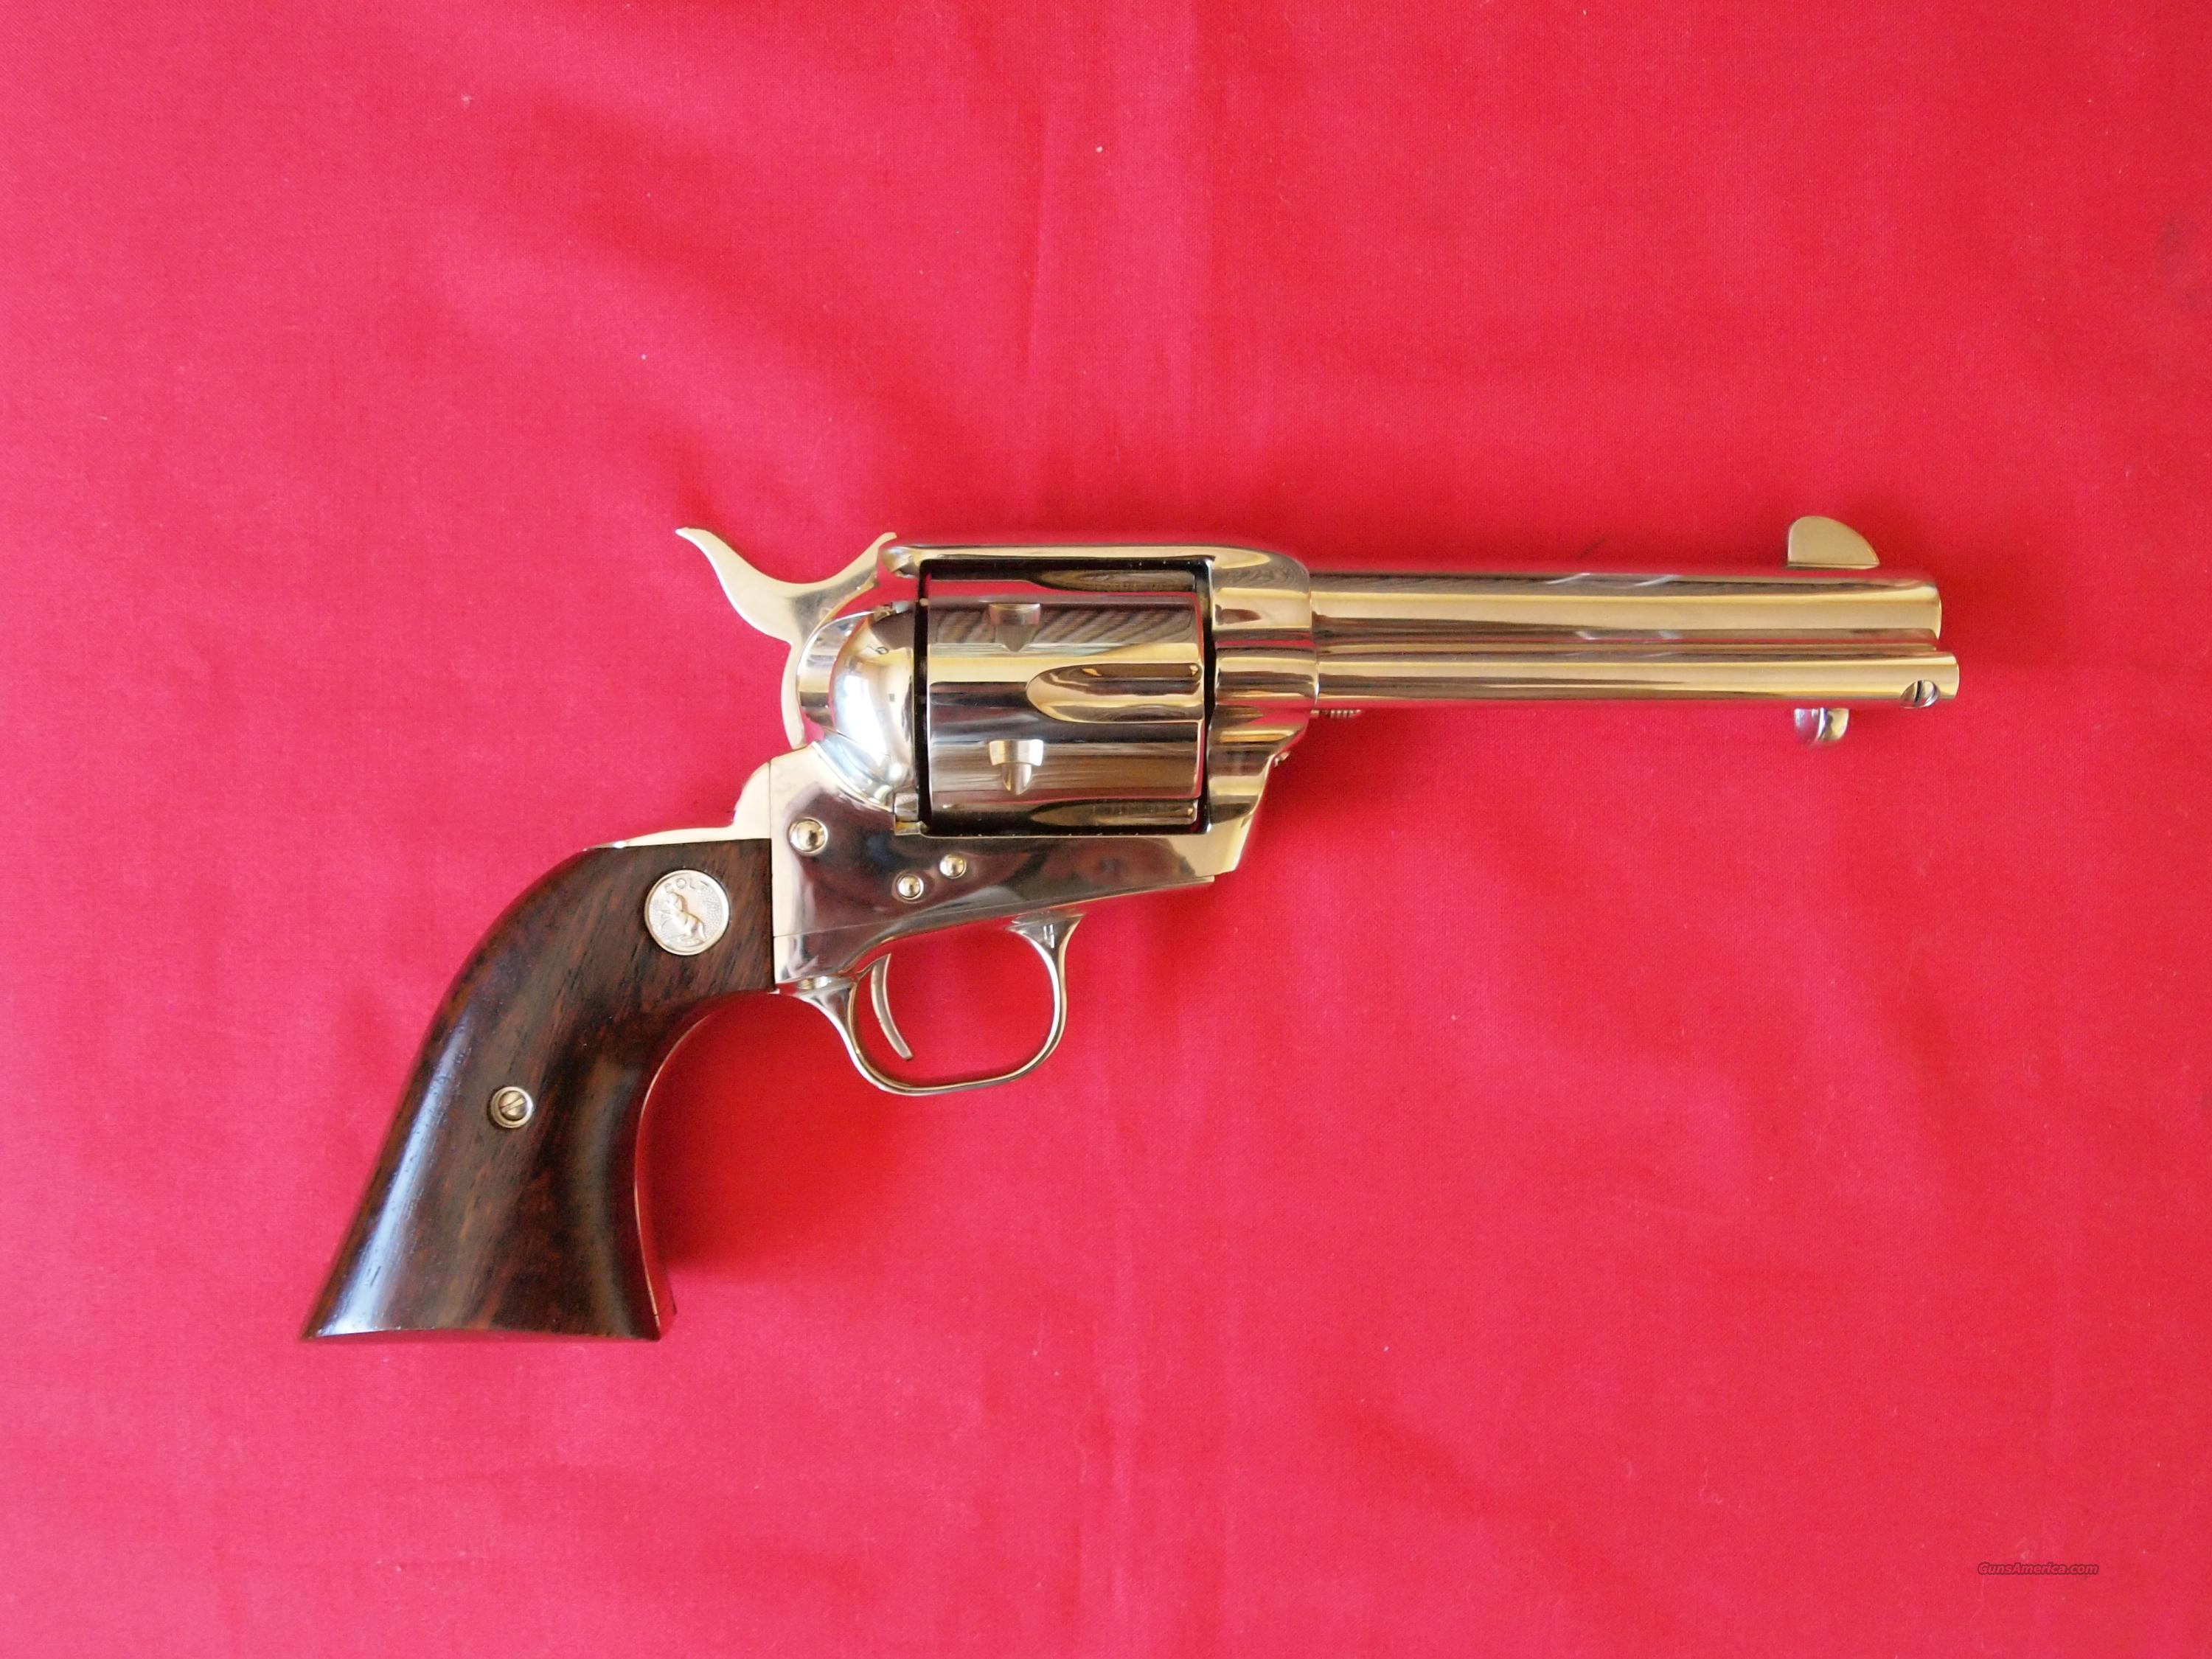 Colt Single Action Army 3rd Gen 45 Colt   Guns > Pistols > Colt Single Action Revolvers - 3rd Gen.